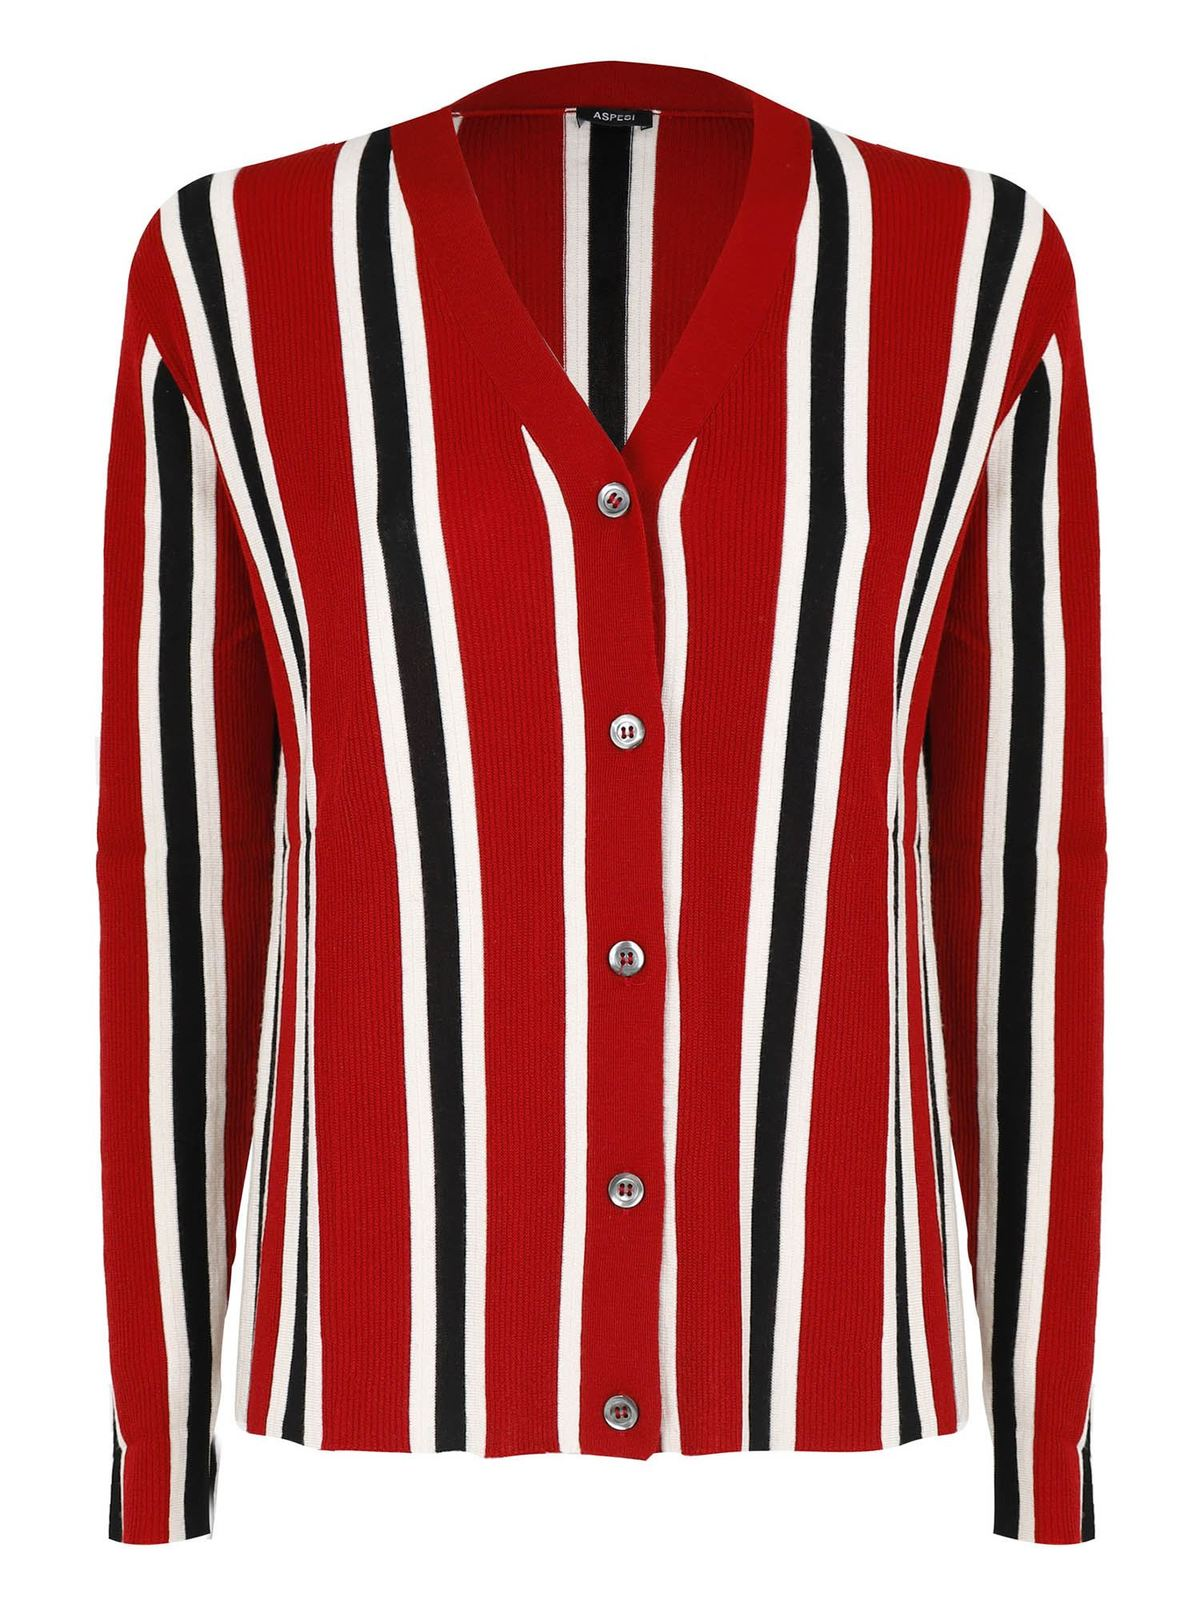 Aspesi STRIPED PATTERN CARDIGAN IN RED